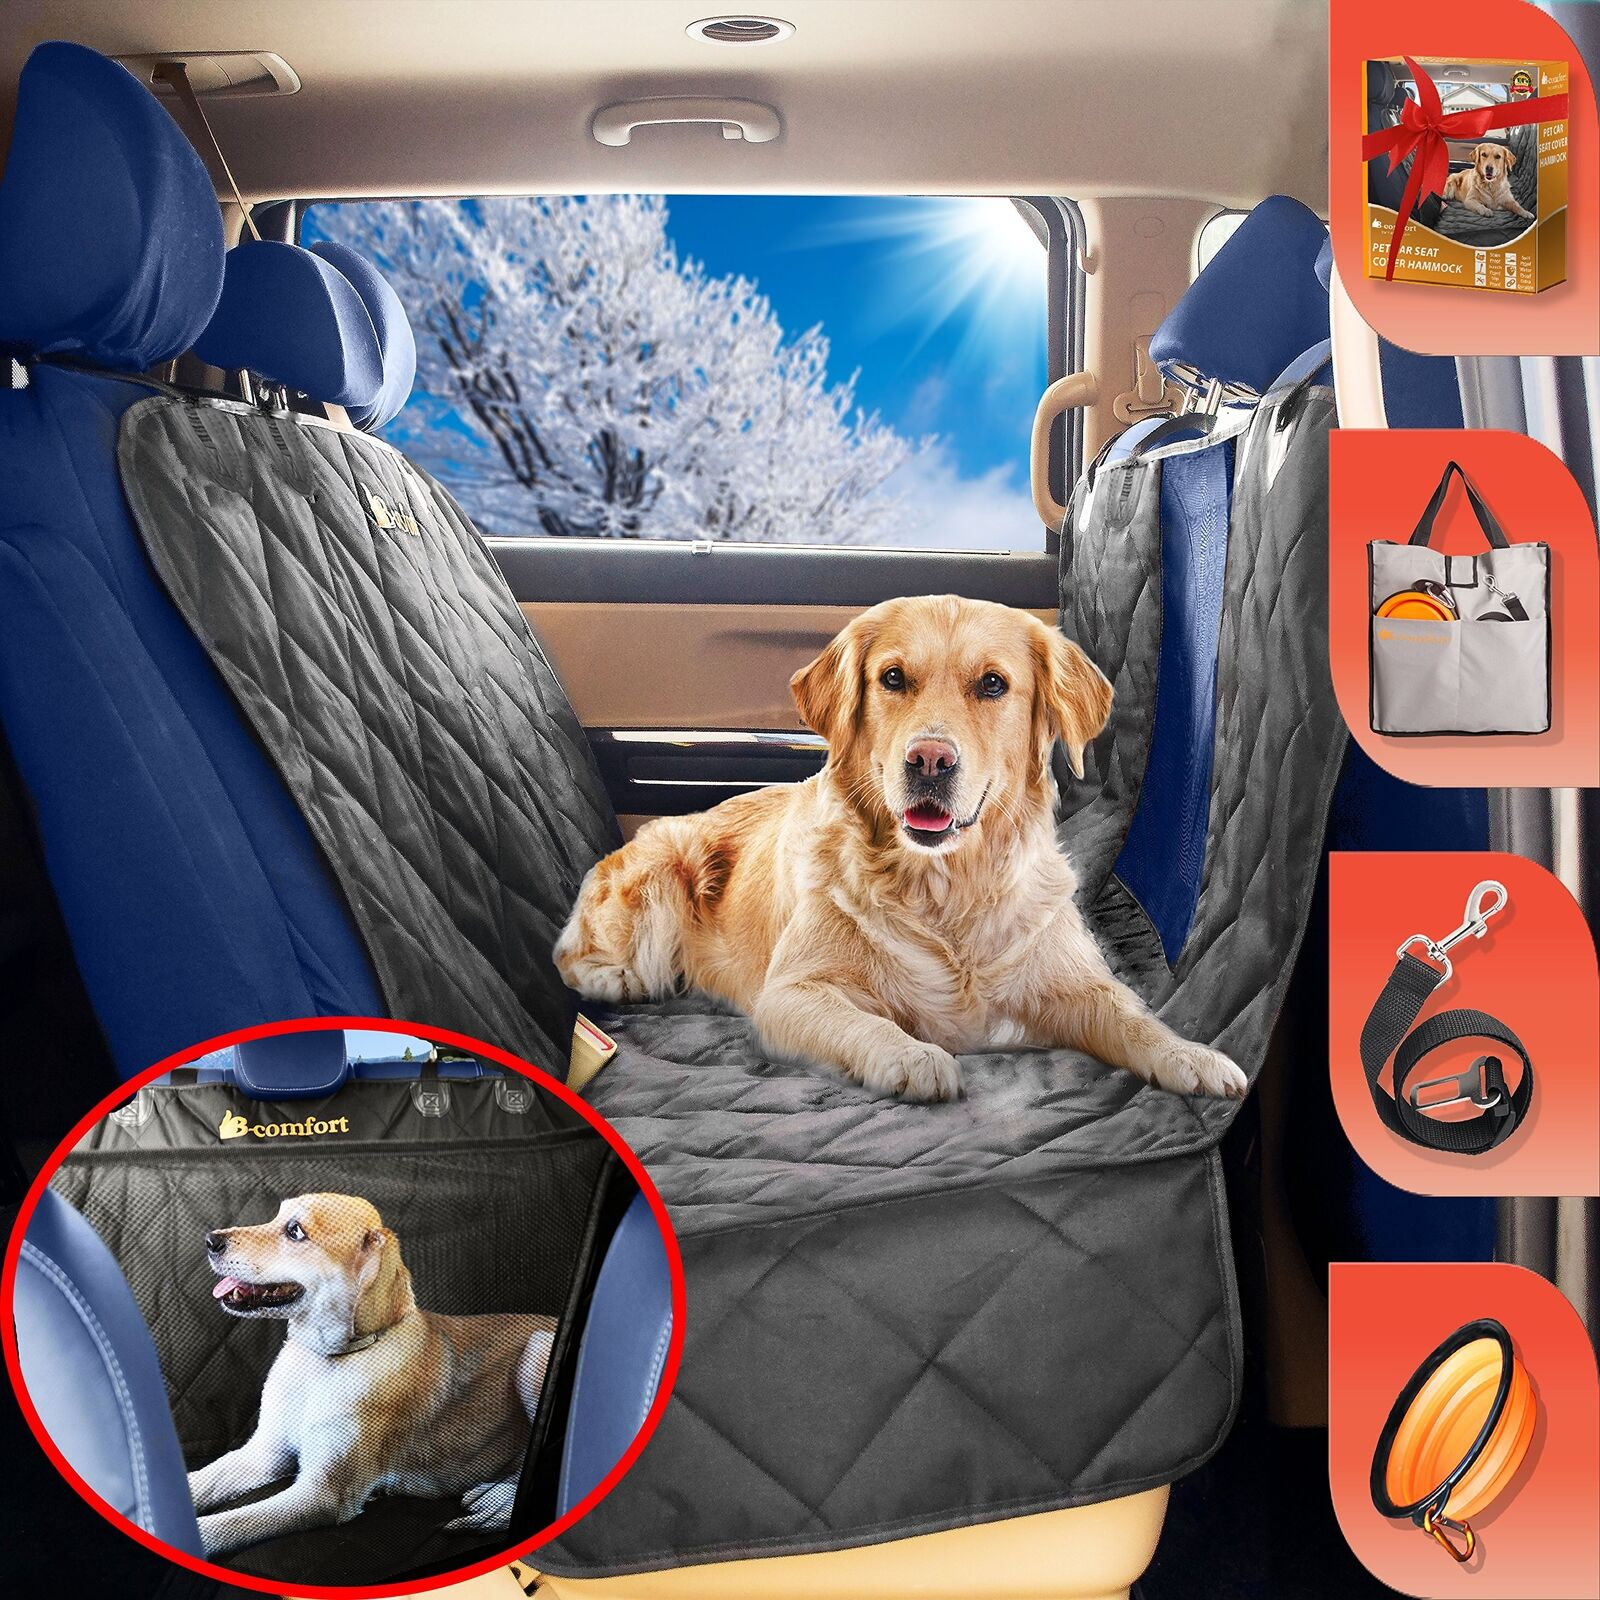 B-comfort Pet Car Seat Cover for Dogs-Unique Clear View Window-Large Luxury